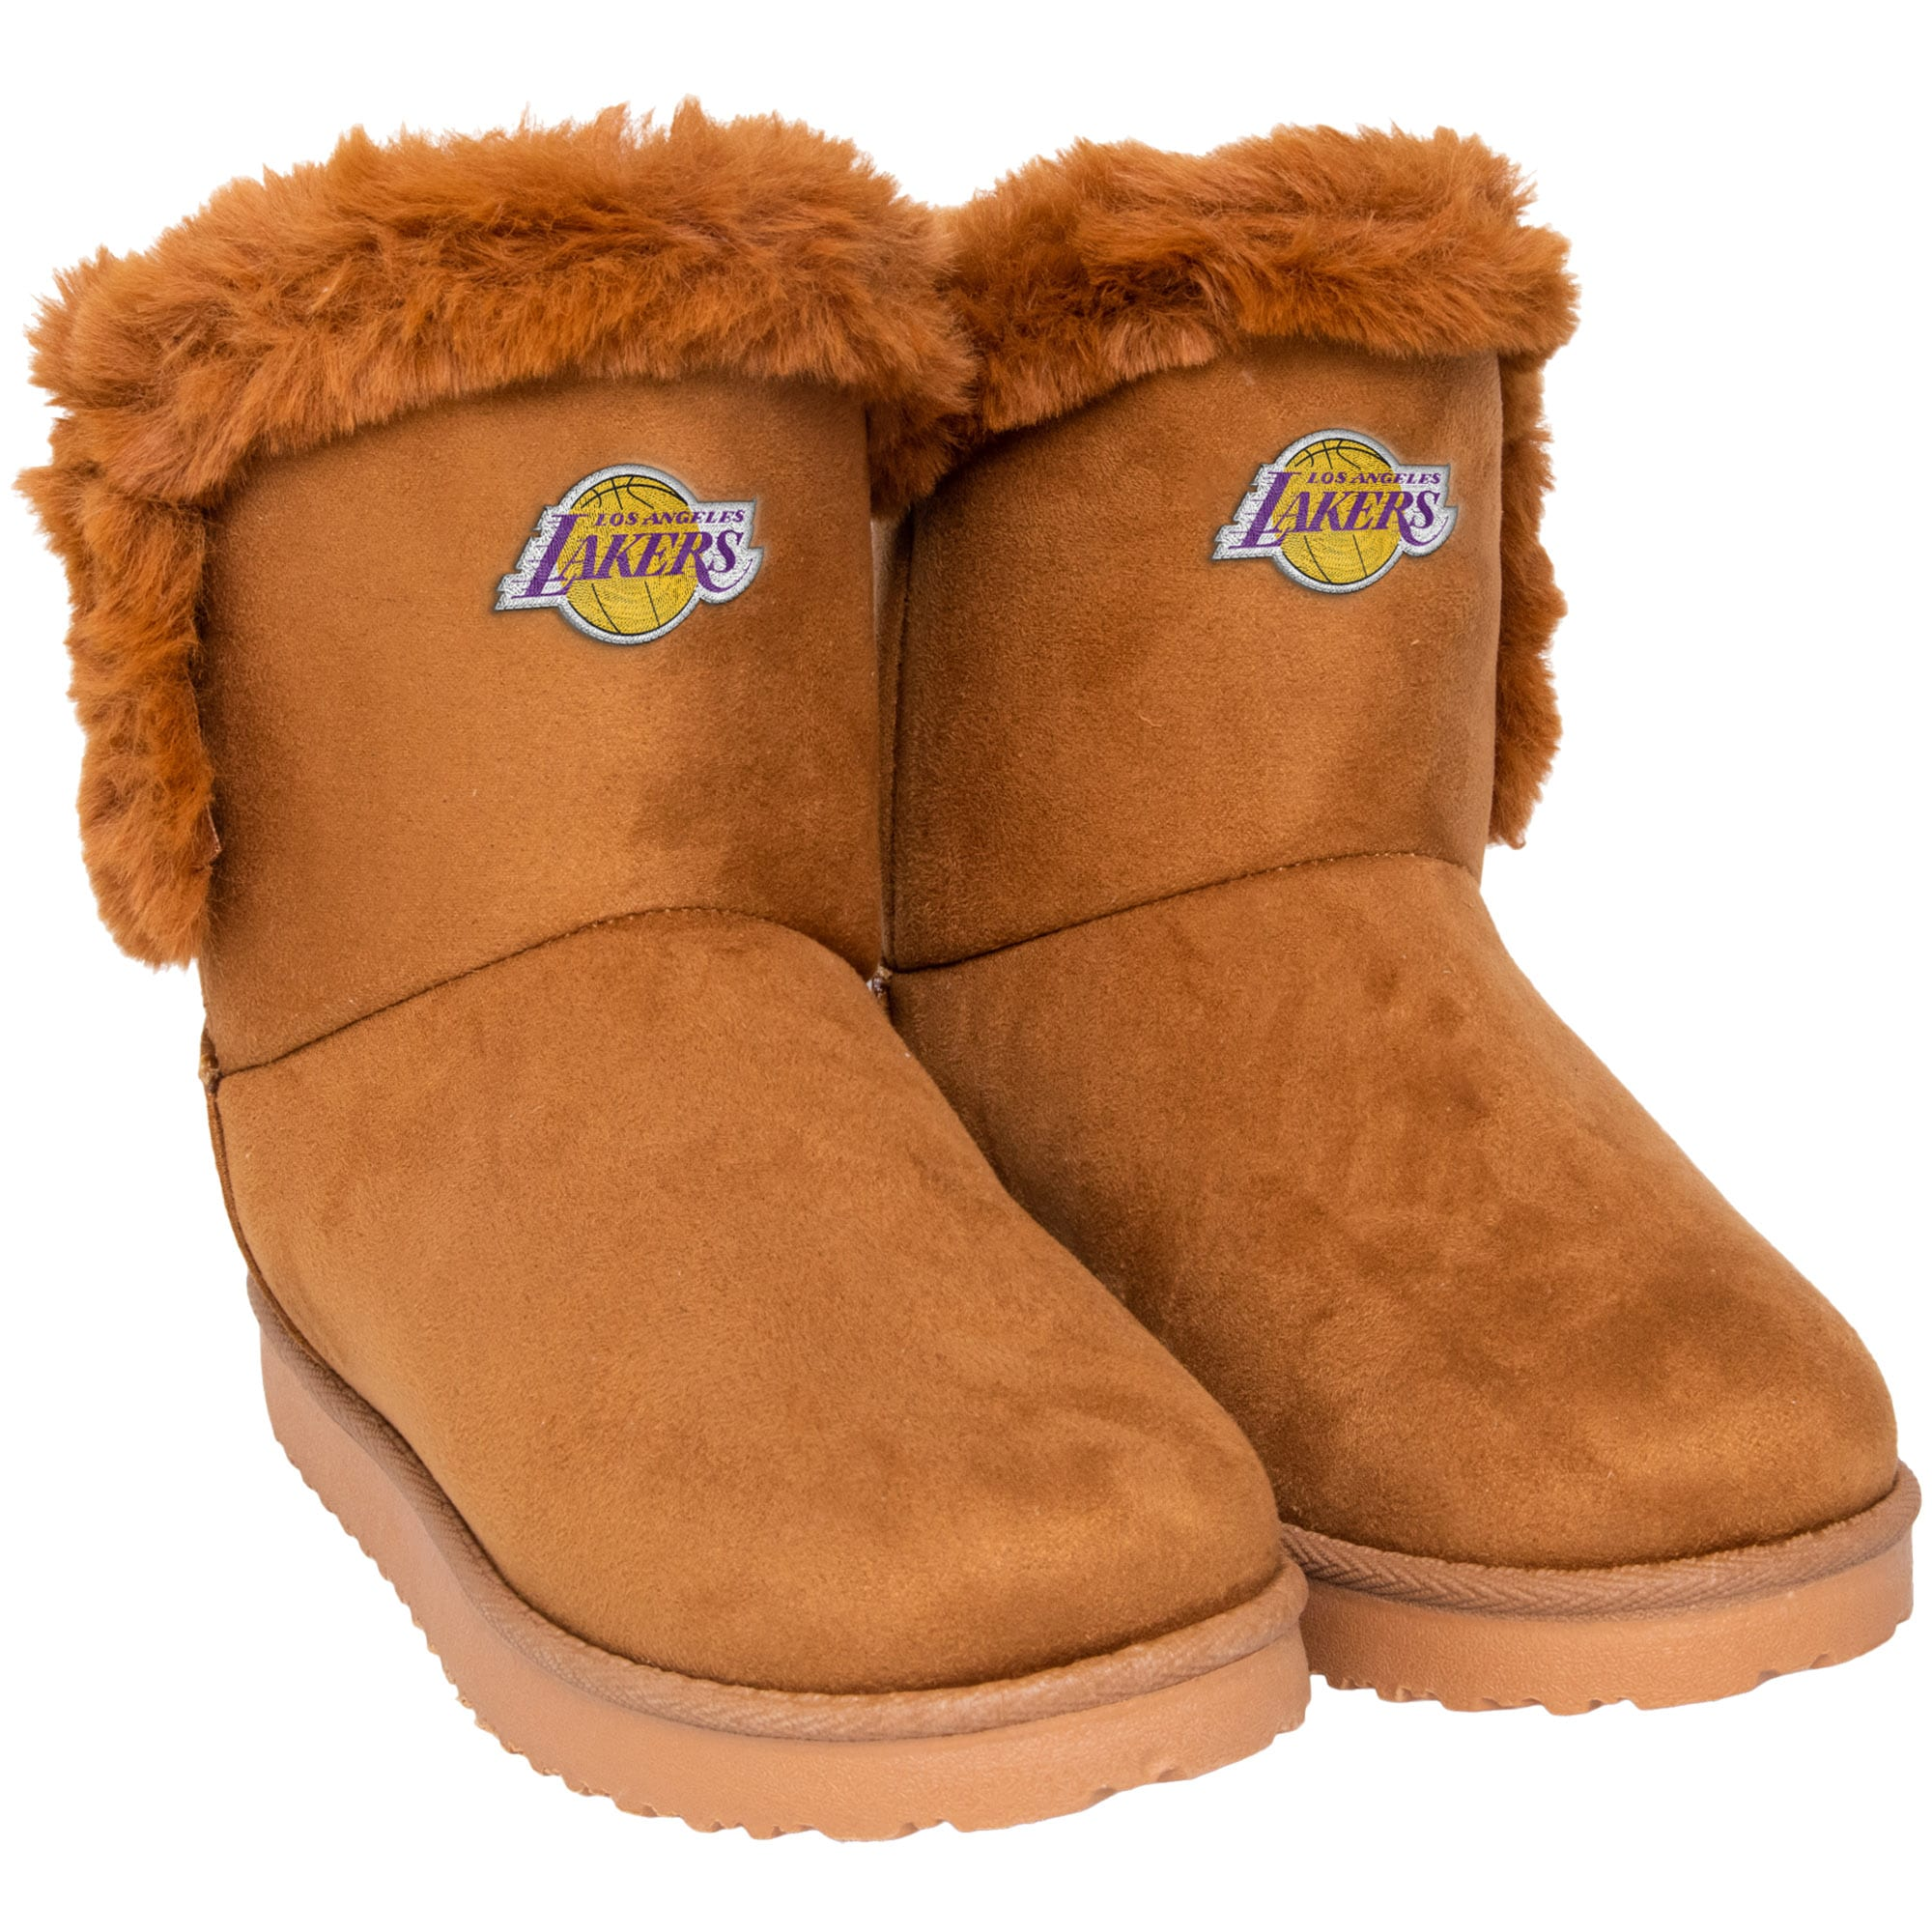 Los Angeles Lakers FOCO Women's Faux Fur Boots - Brown